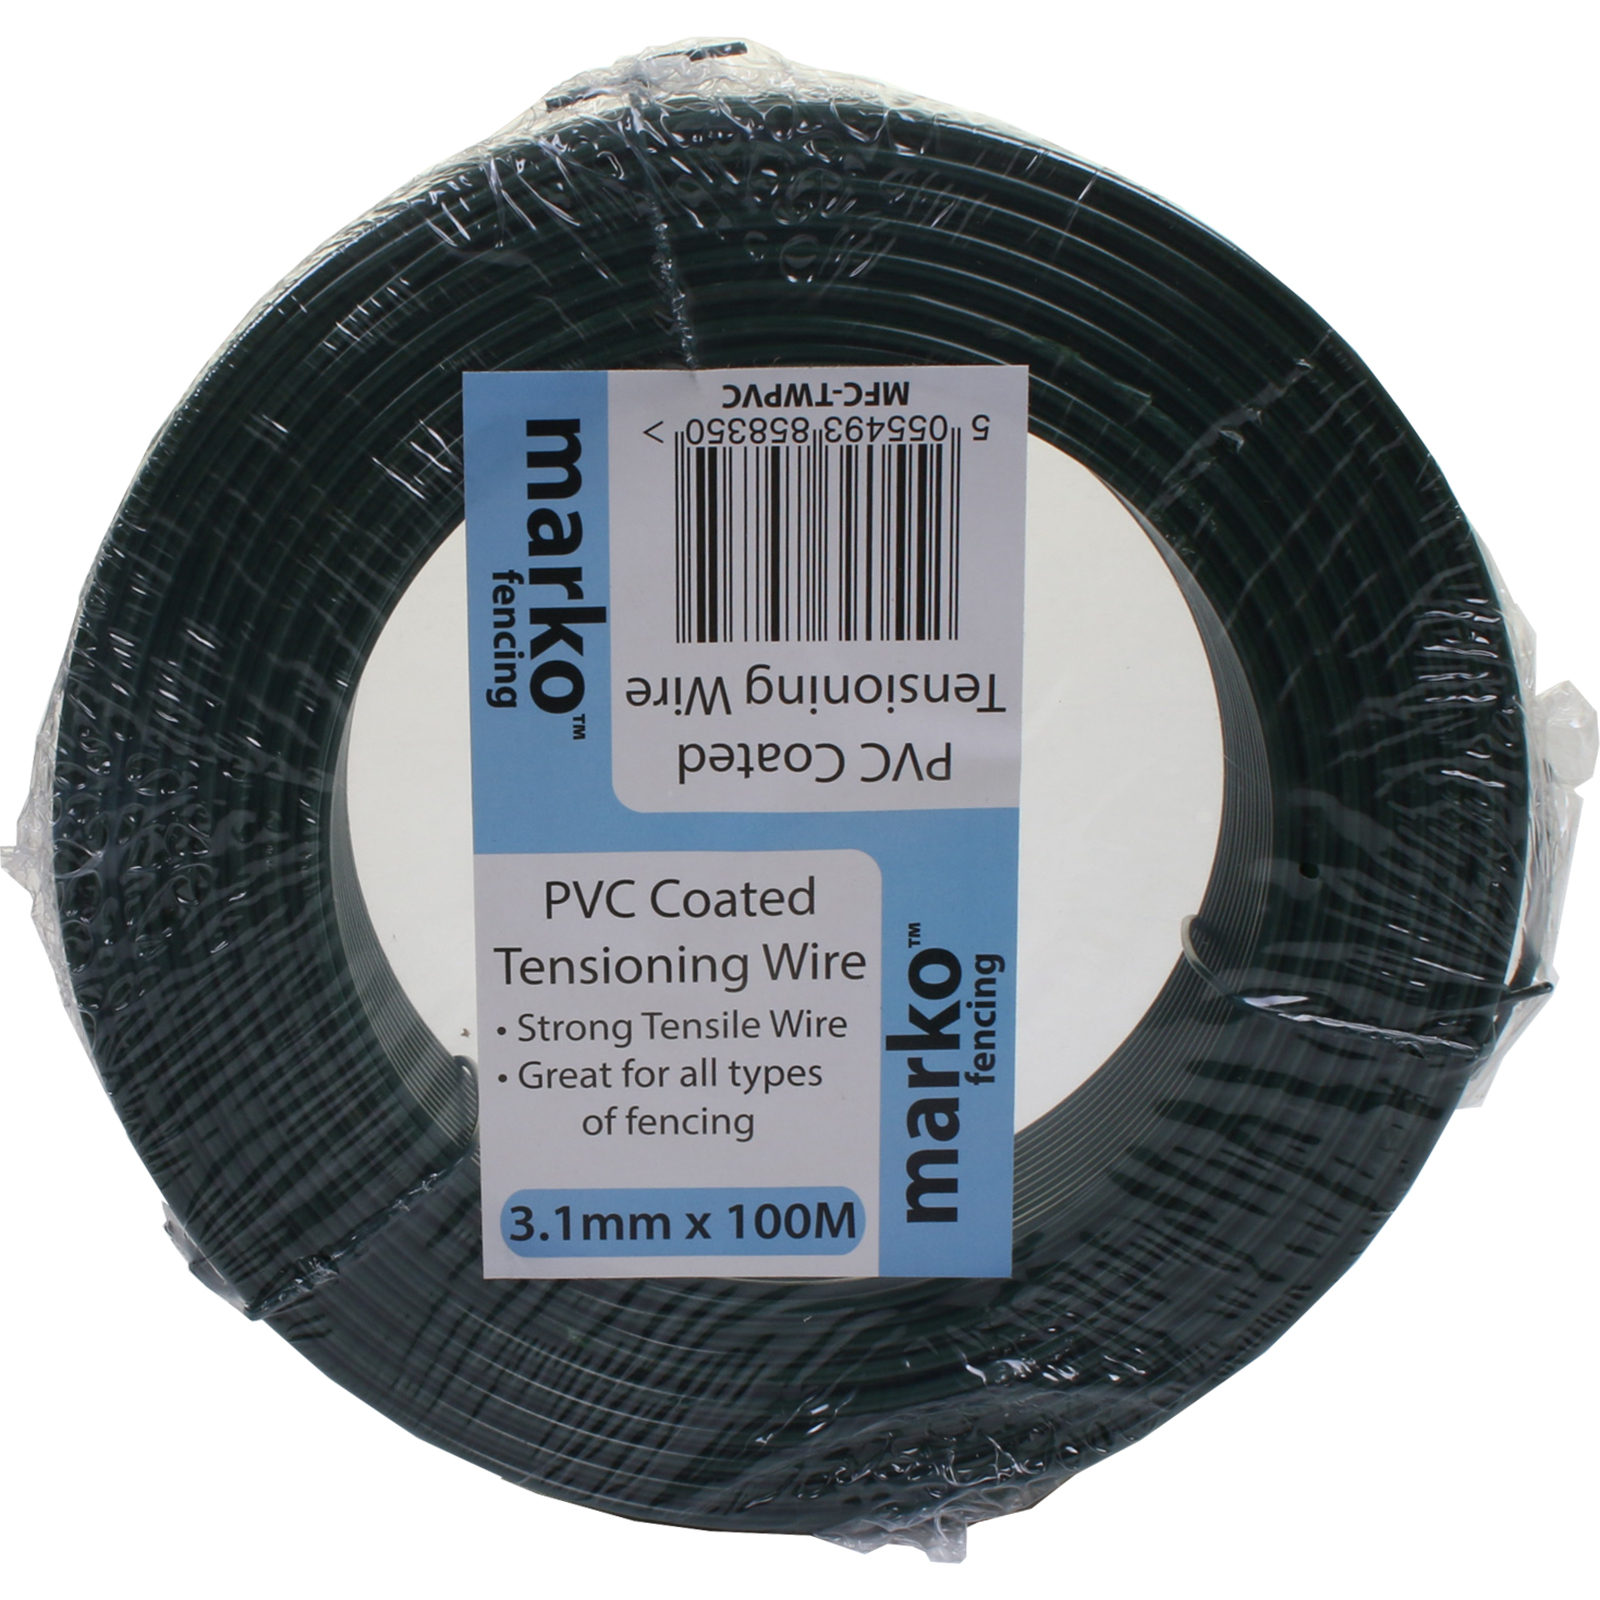 PVC Coated Tension Wire Galvanised Heavy Duty Straining Line Fence ...